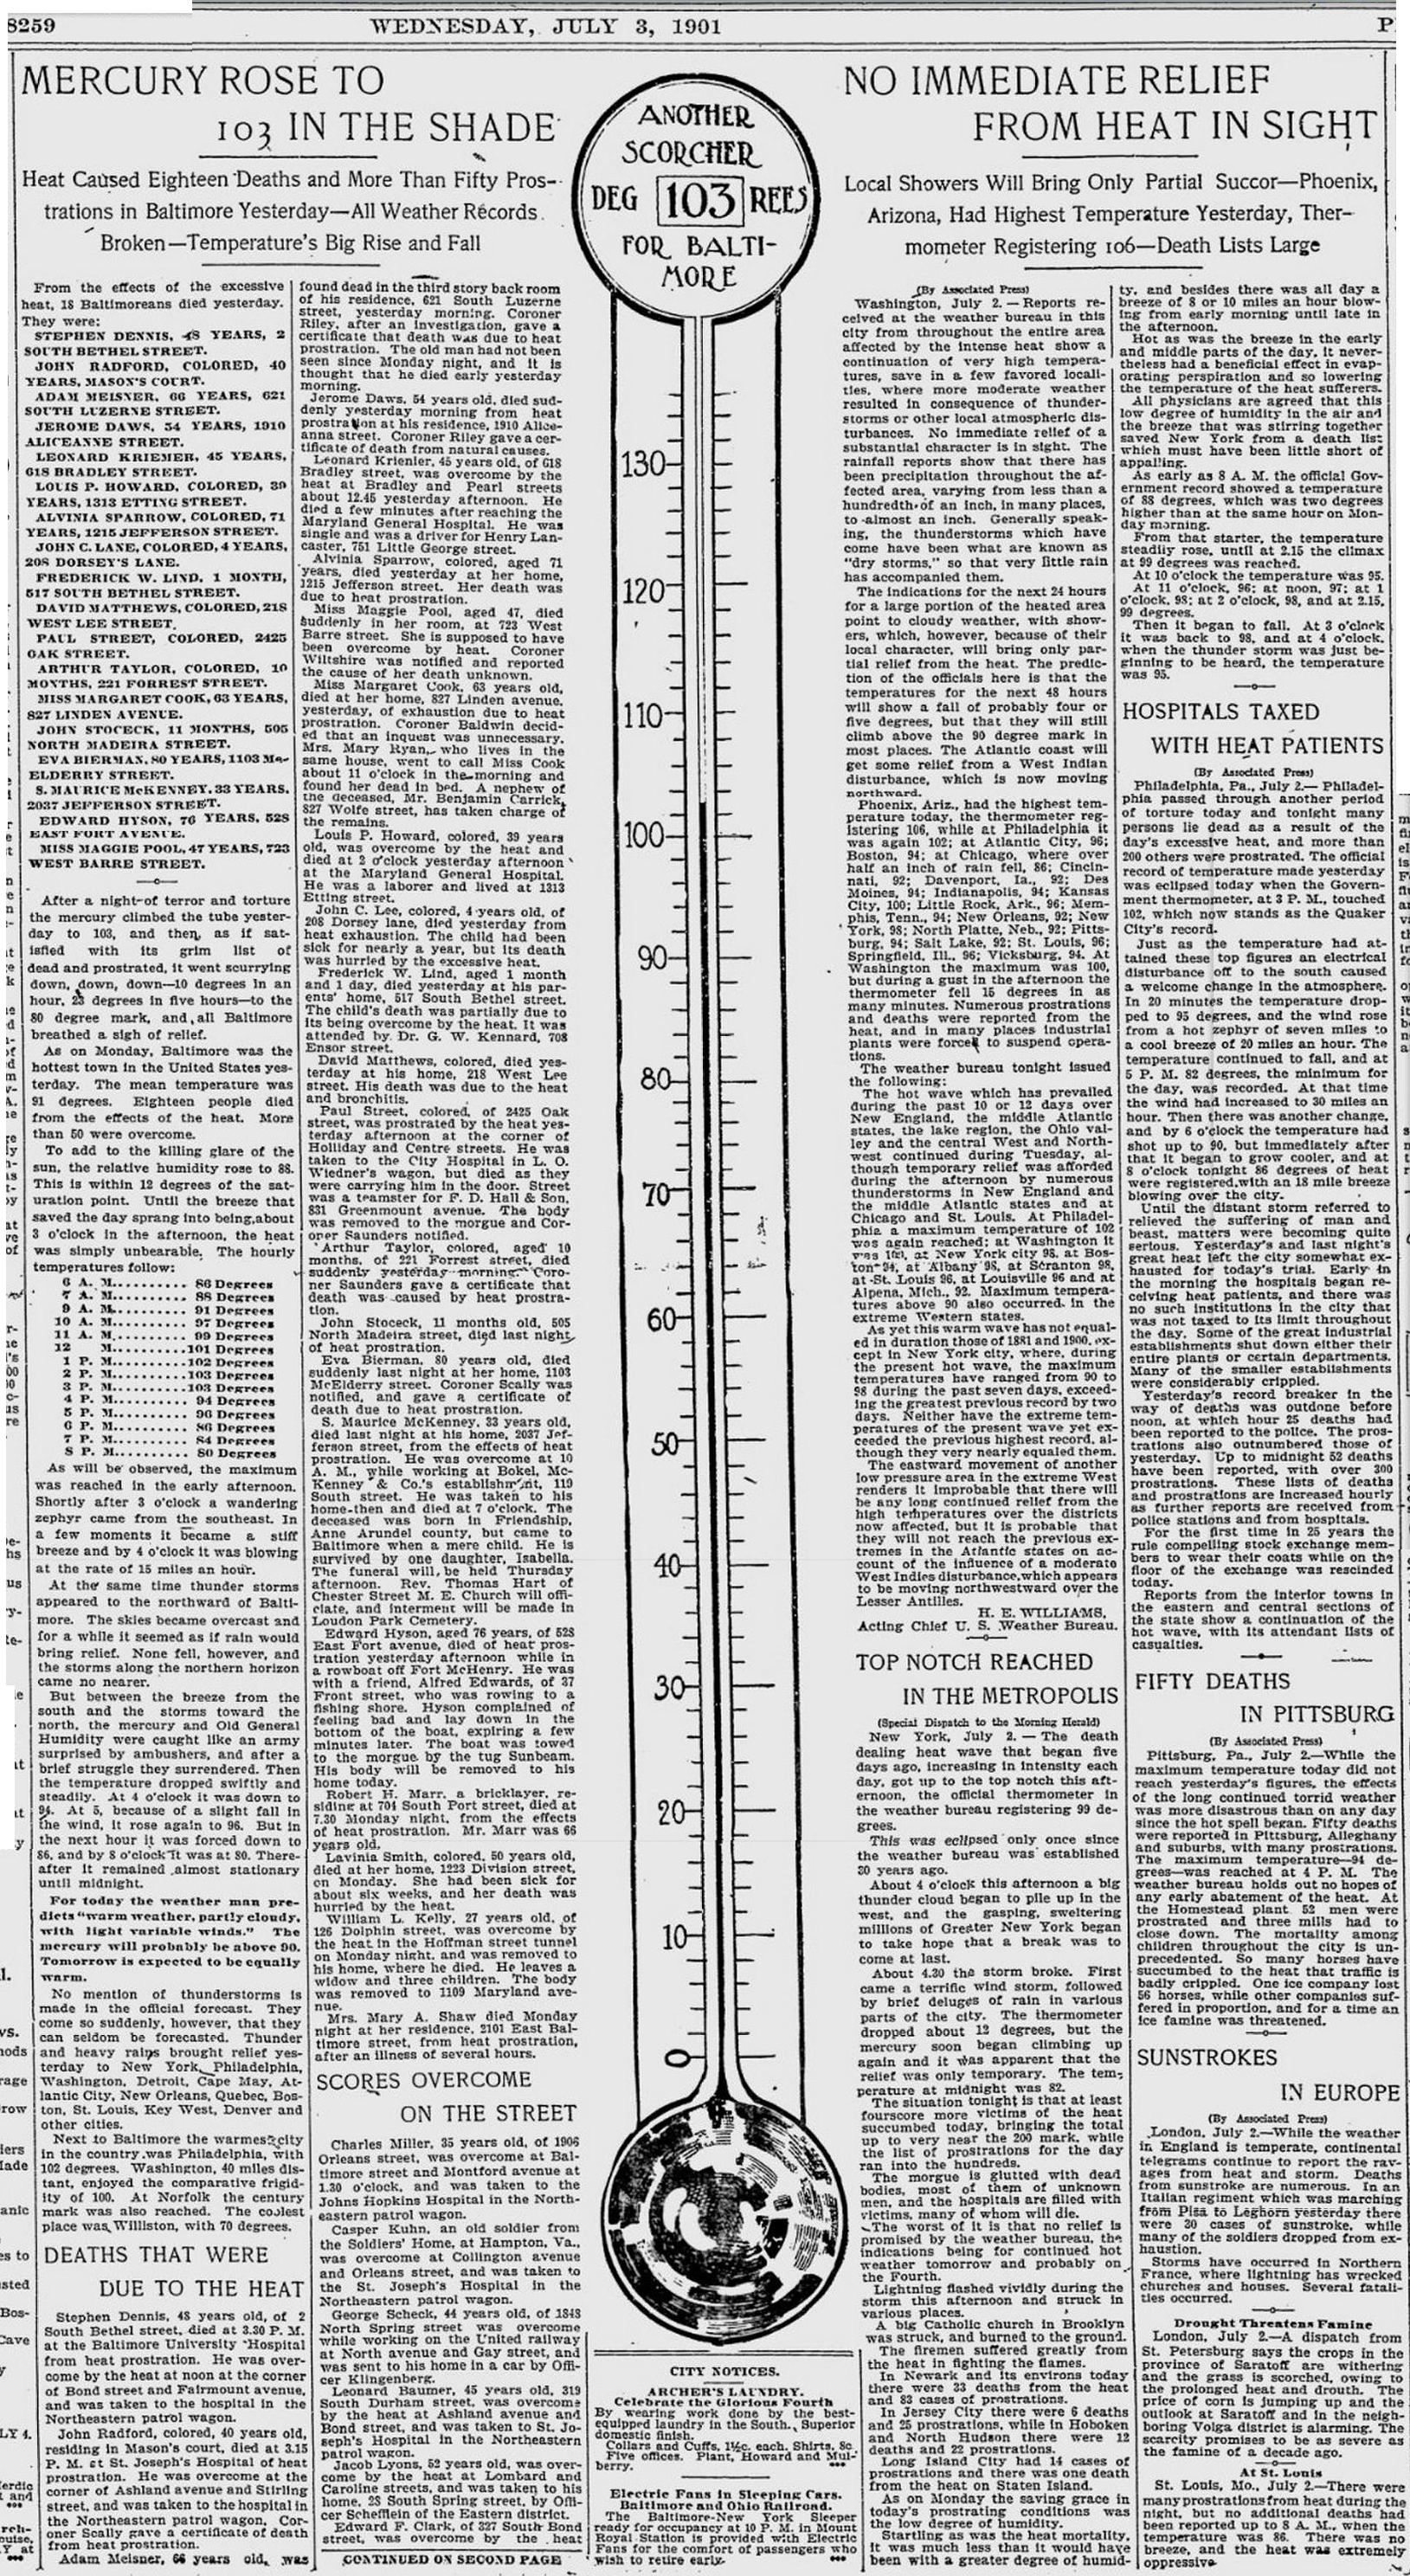 Baltimore Morning Herald - 3 July 1901